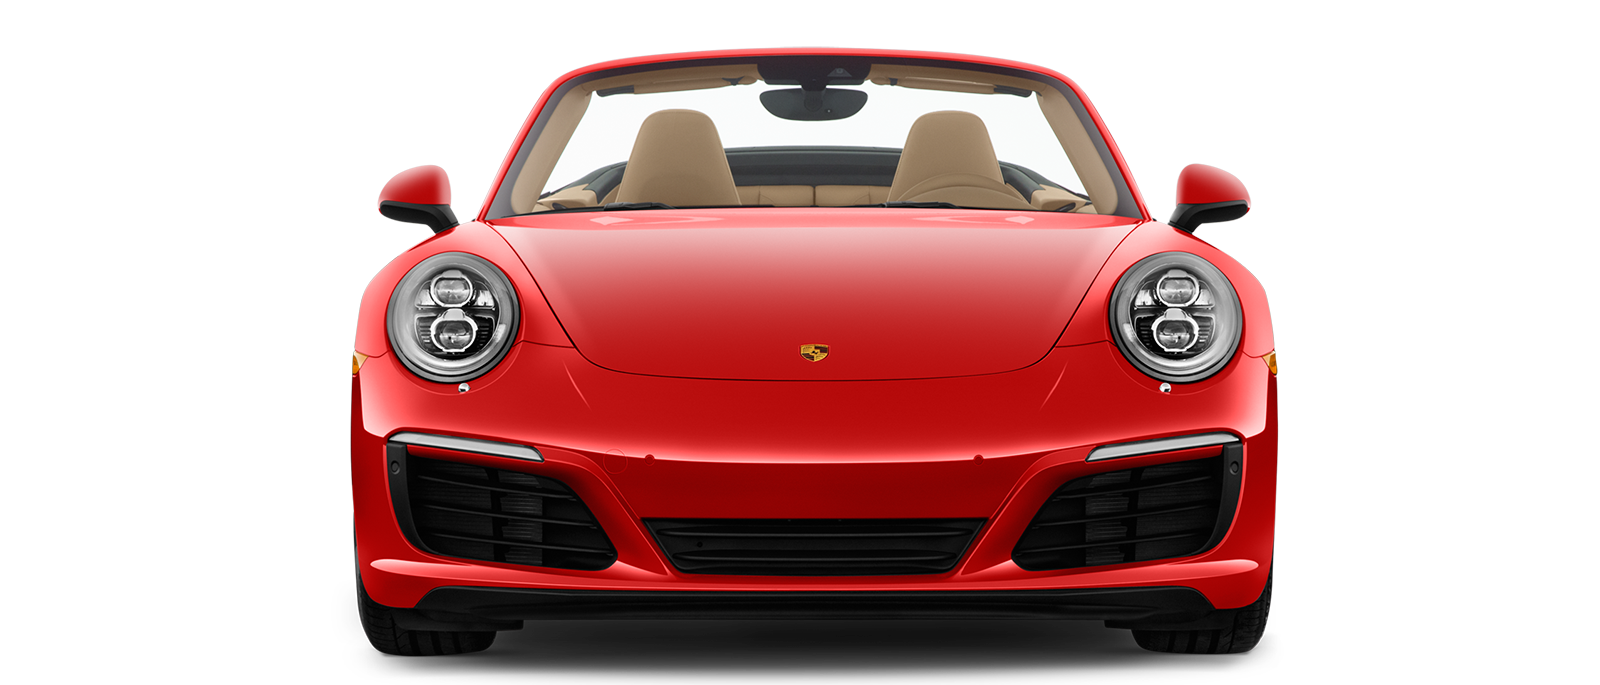 a in dallas best exotic reviews veneno cars roadster rent rental lambarghini all luxury top ferrari car